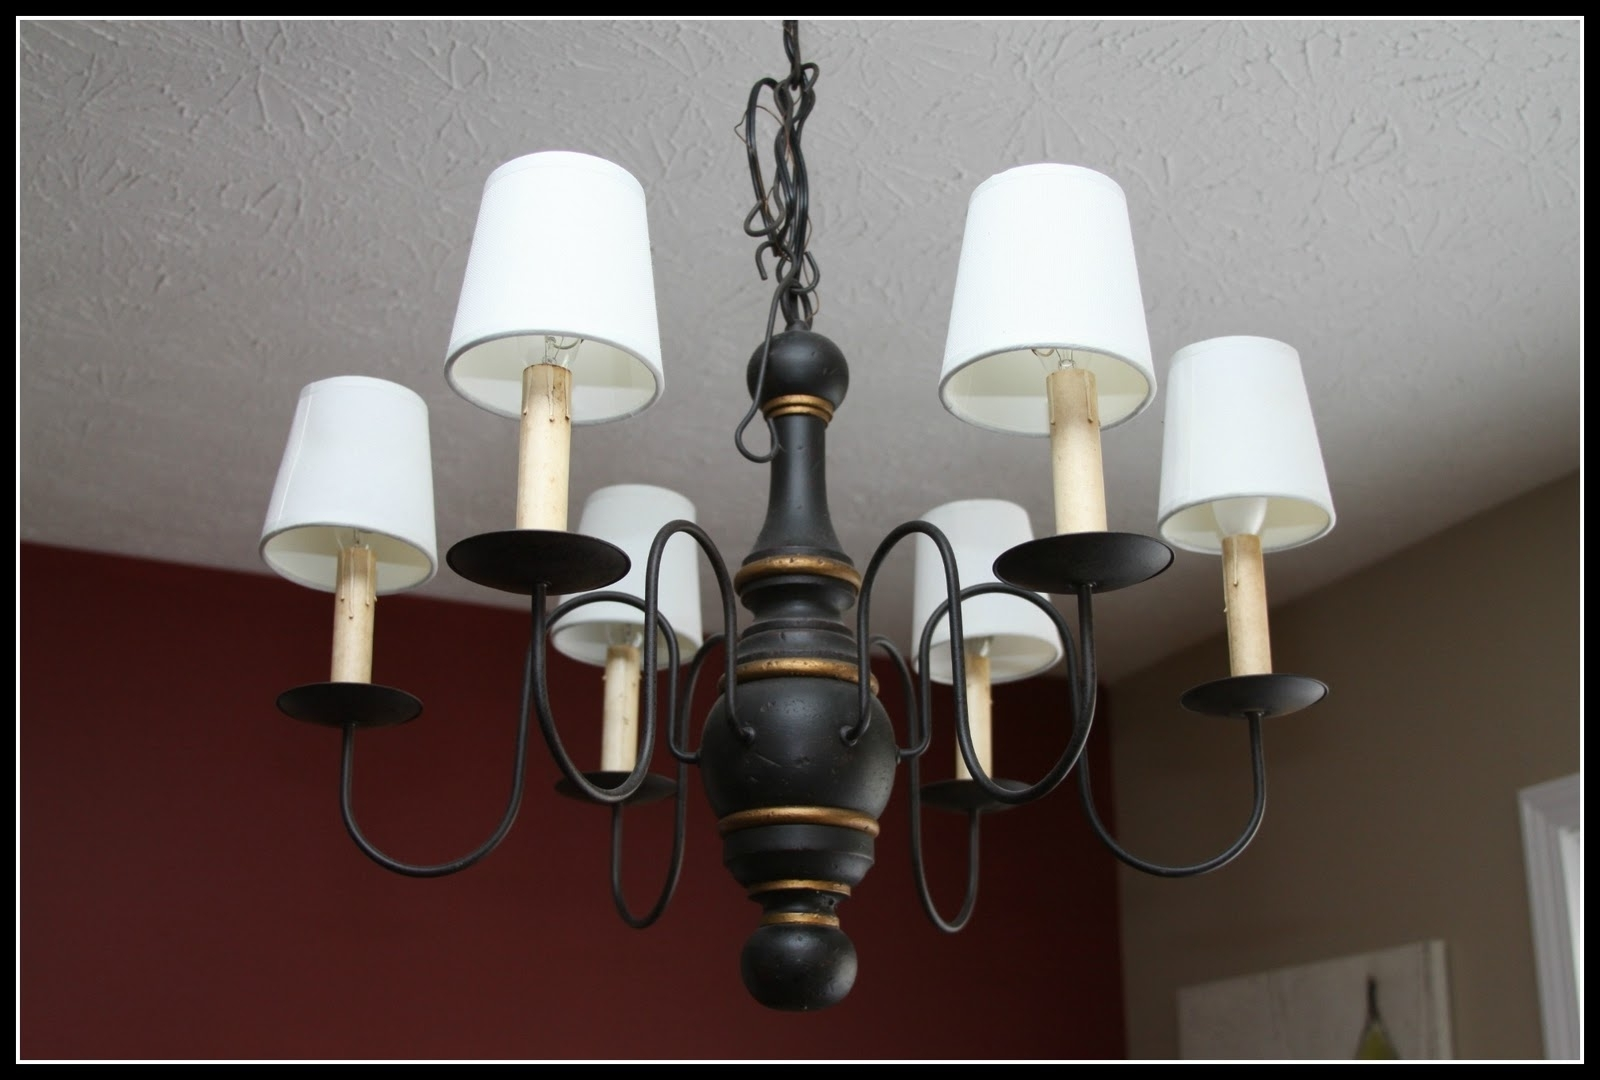 Recent Cool Lamp Shades For Chandeliers Hanging Lamp Shade Six Lamps And Throughout Lampshades For Chandeliers (View 5 of 15)